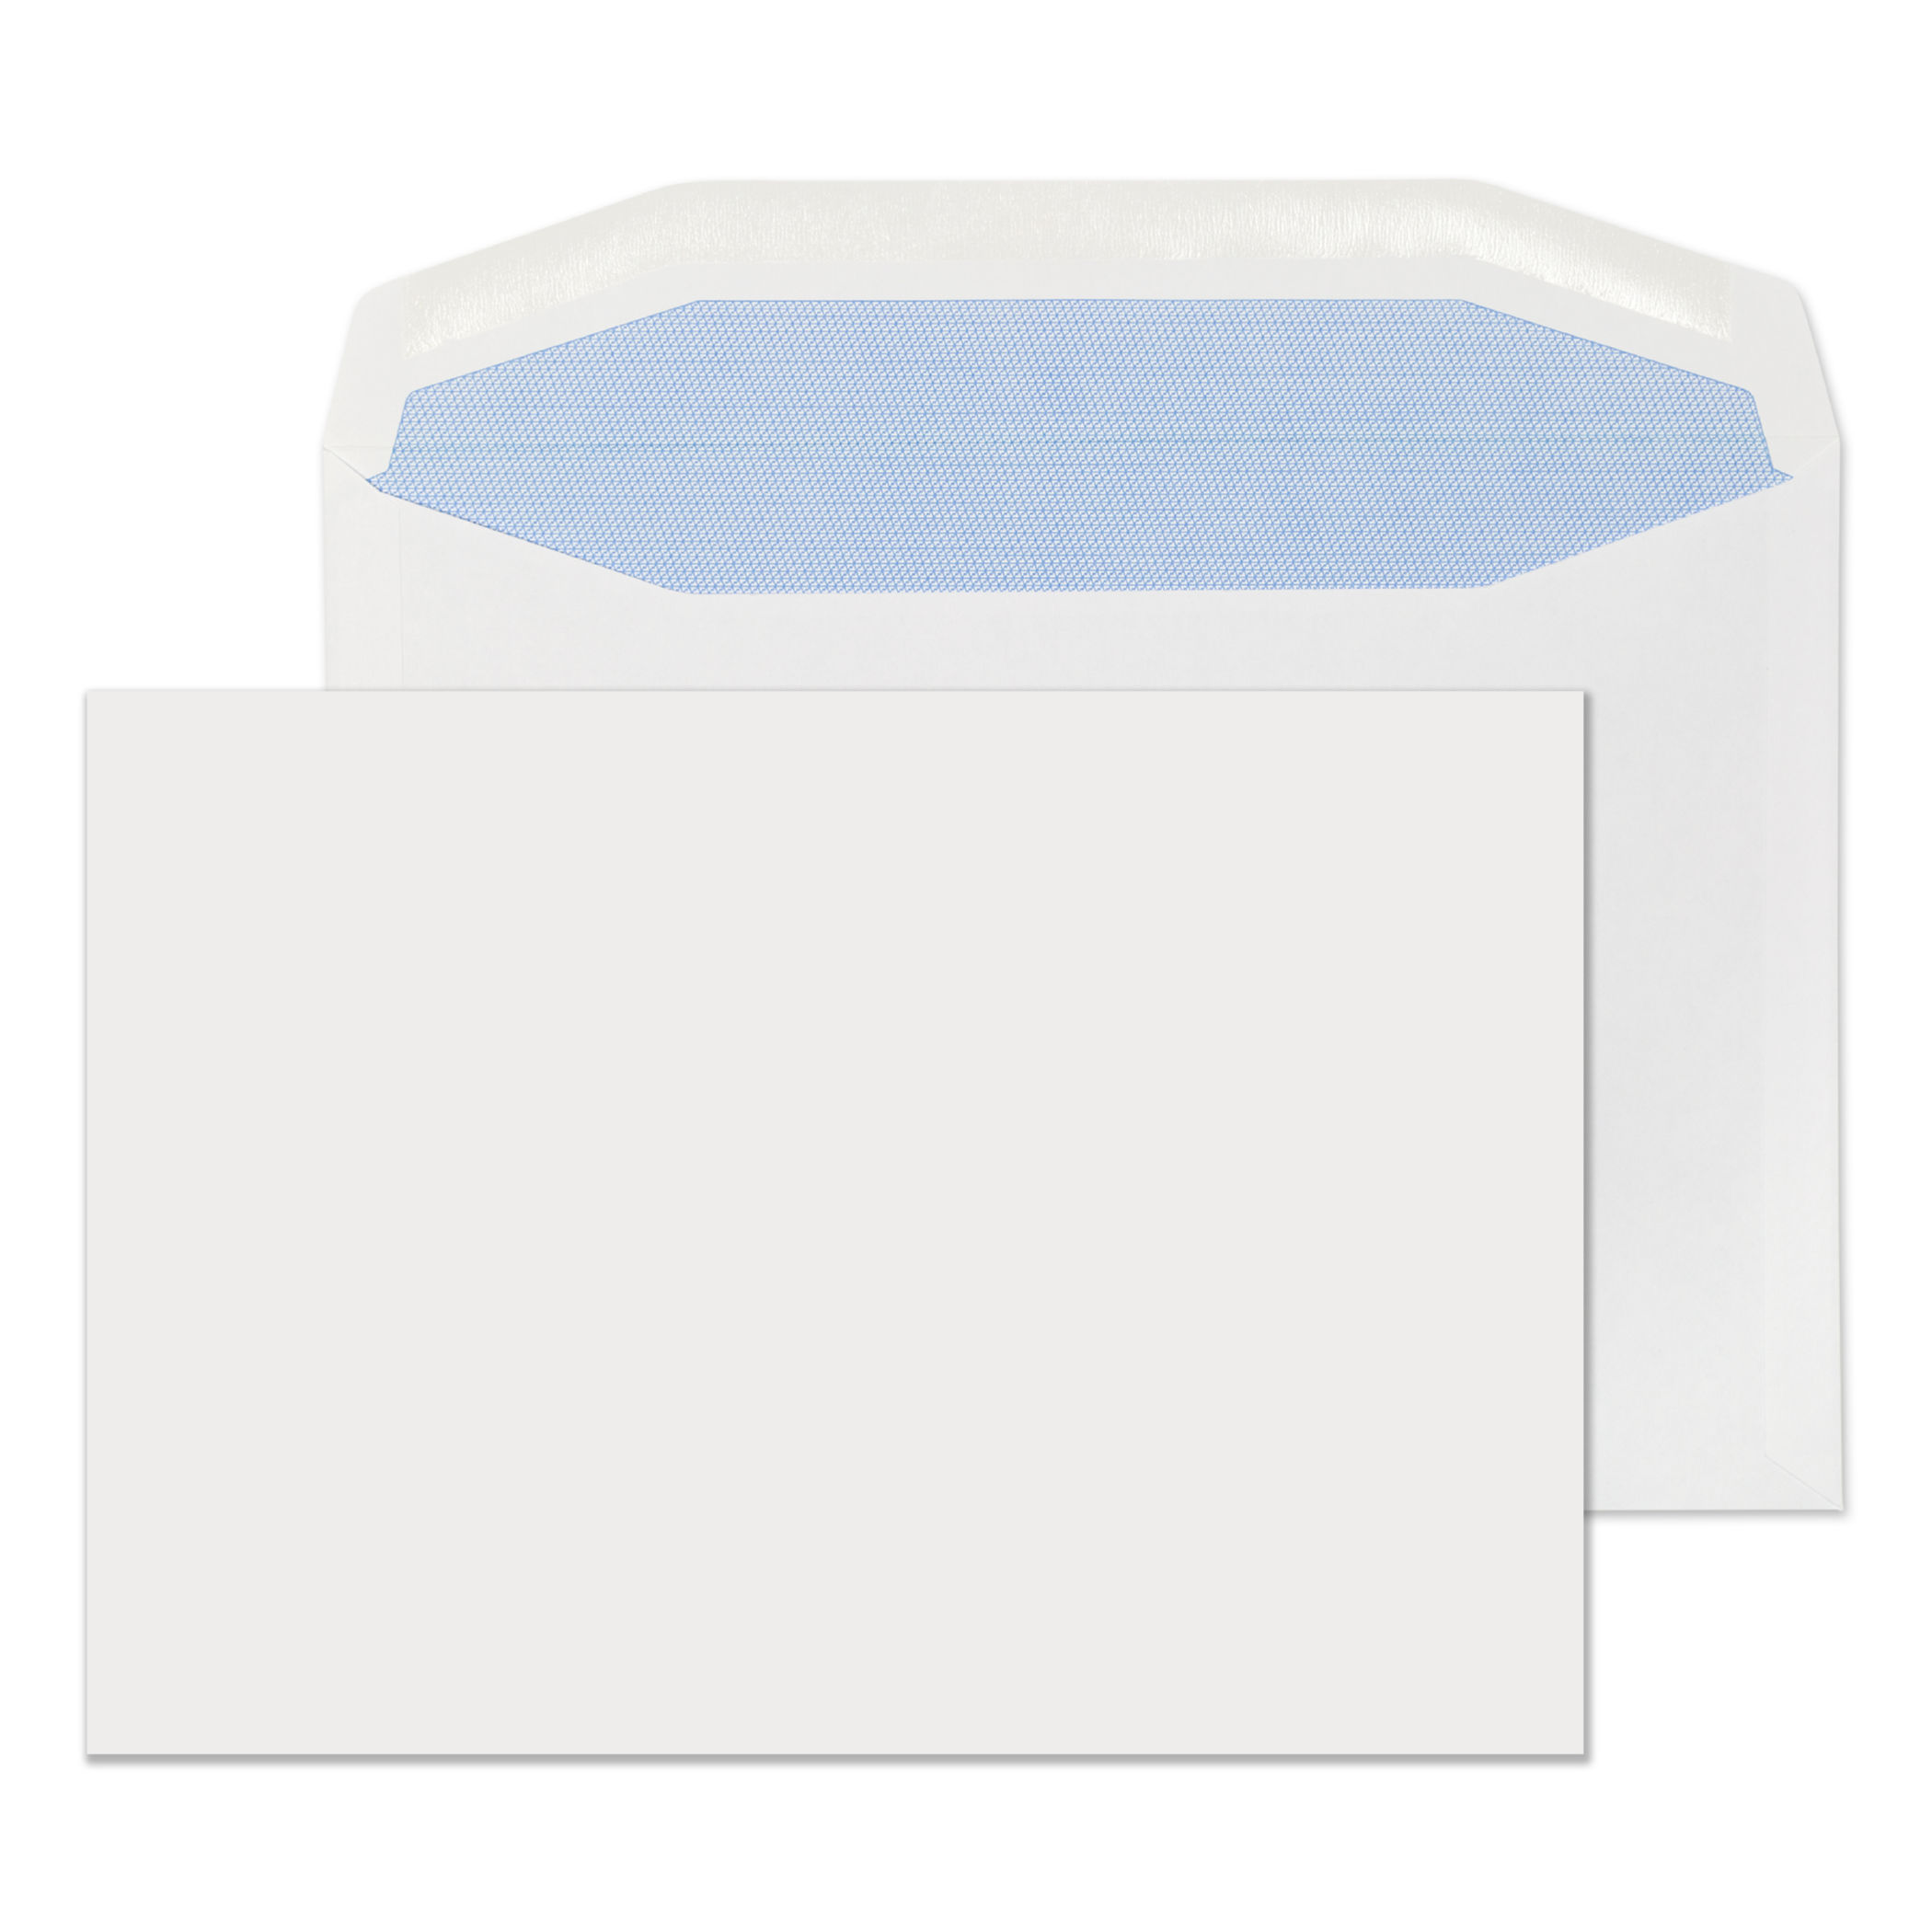 C5 Purely Everyday C5 90gsm Gummed Mailer Envelopes White PK500